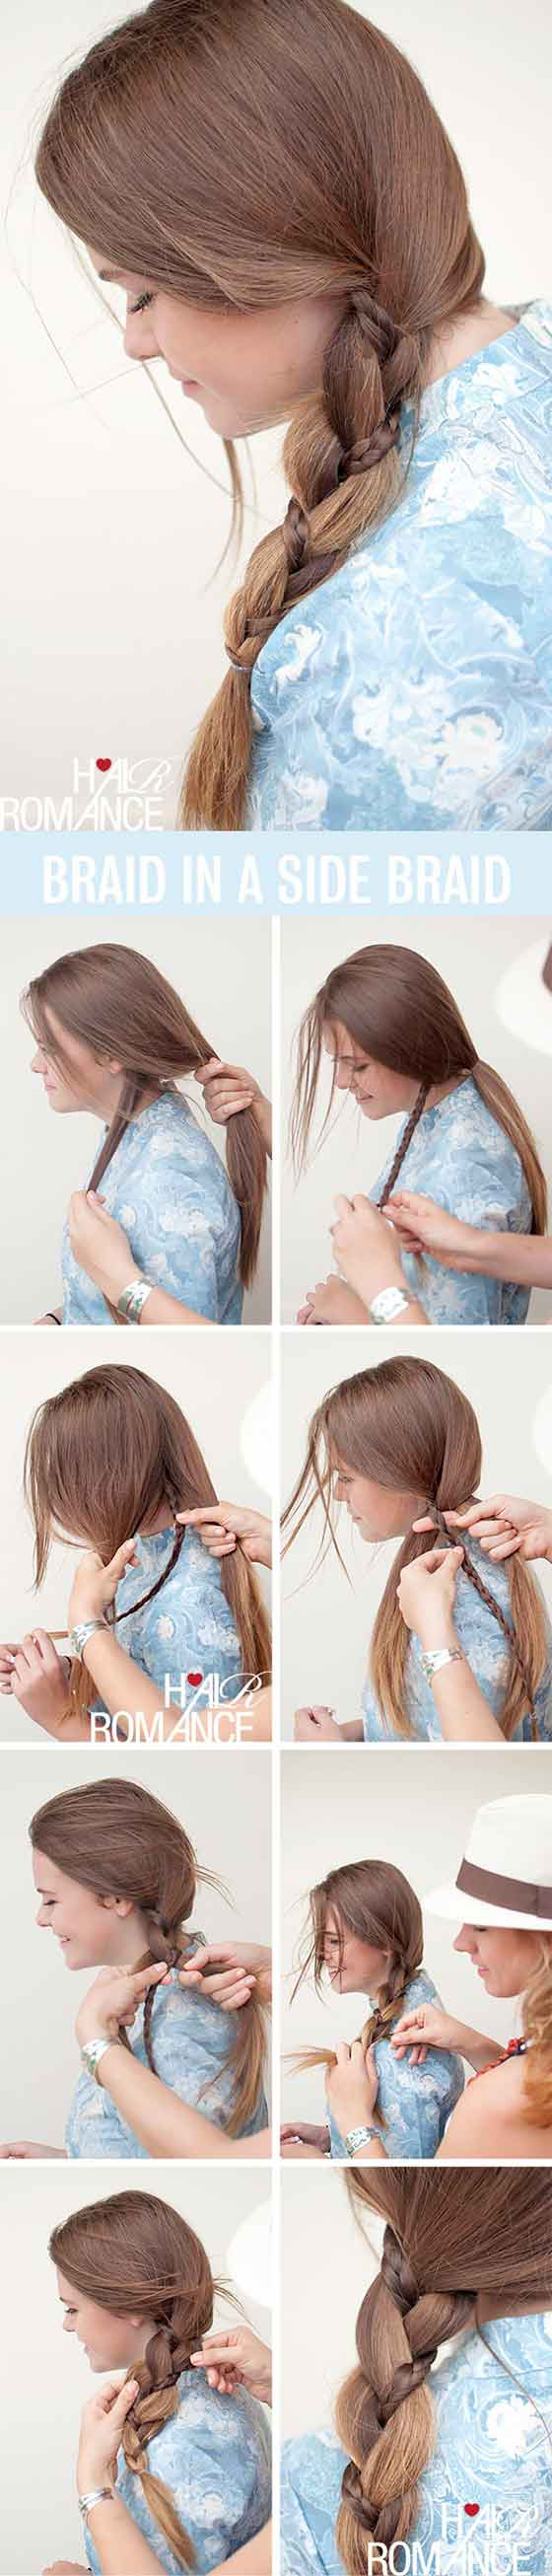 Braid-In-A-Side-Braid